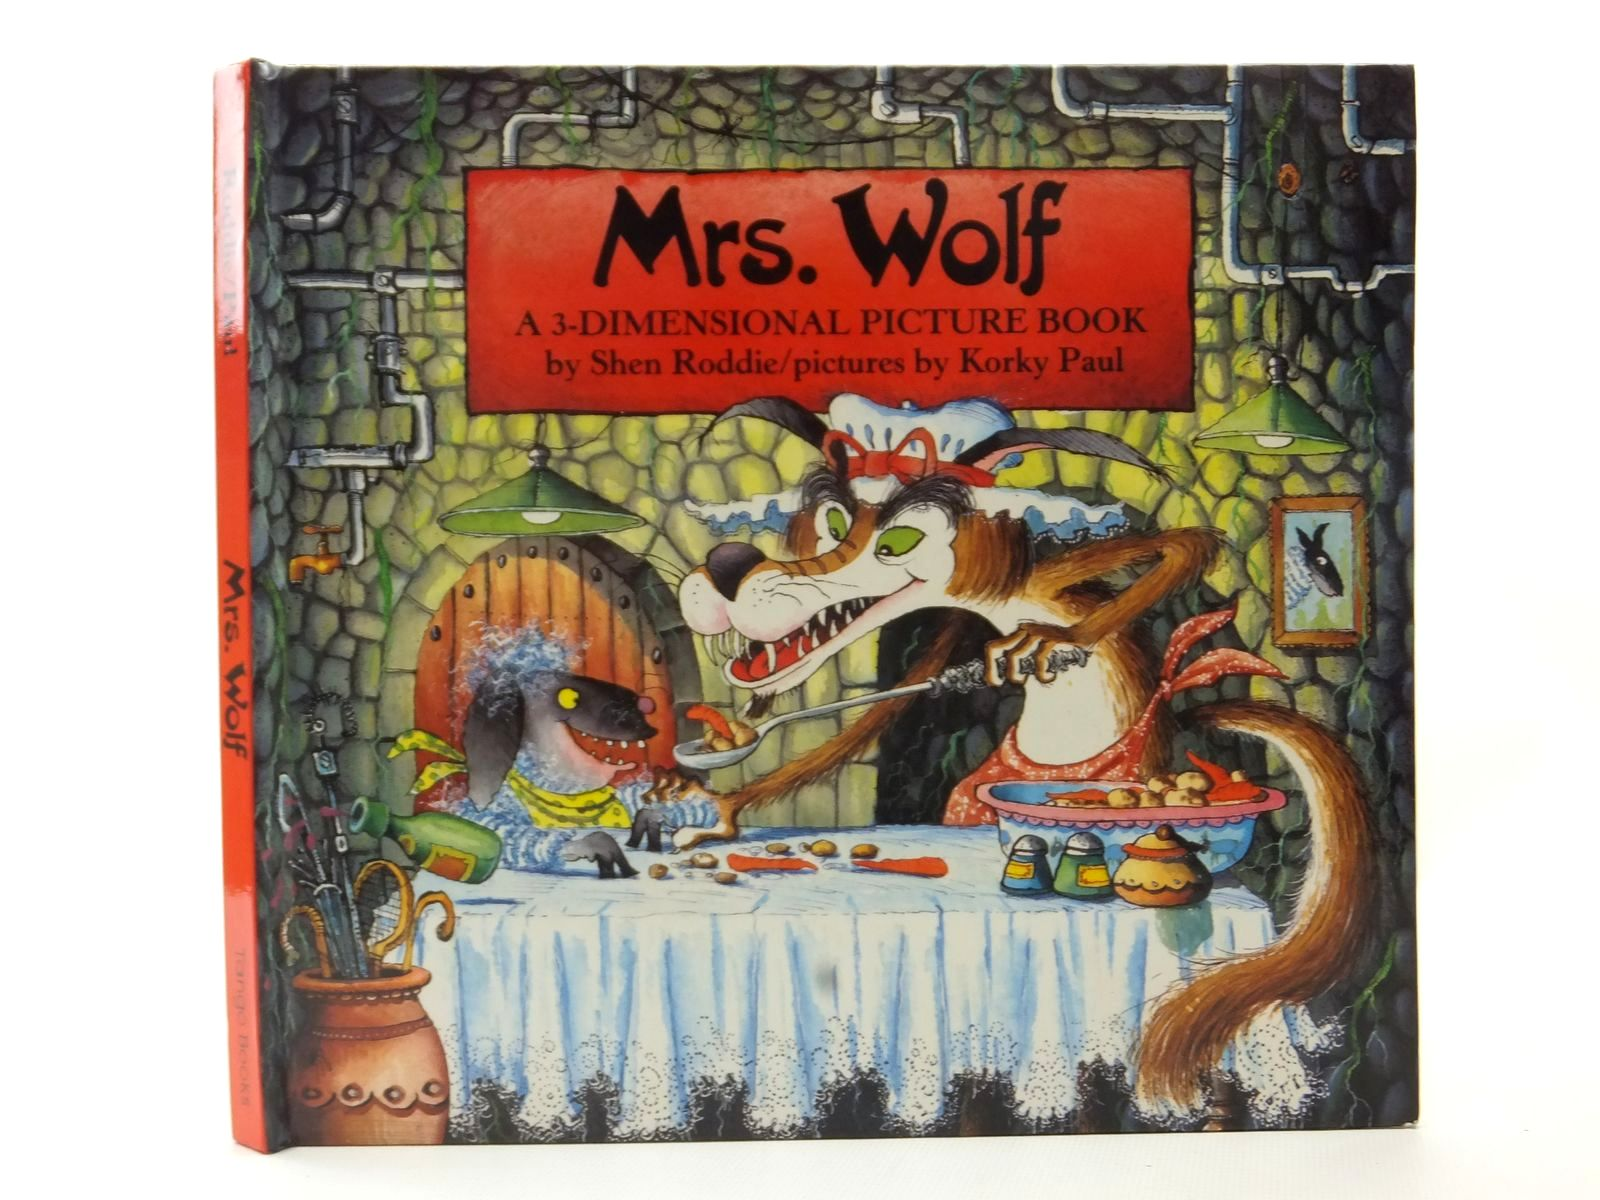 Photo of MRS. WOLF A 3-DIMENSIONAL PICTURE BOOK written by Roddie, Shen illustrated by Paul, Korky published by Tango Books (STOCK CODE: 2124114)  for sale by Stella & Rose's Books